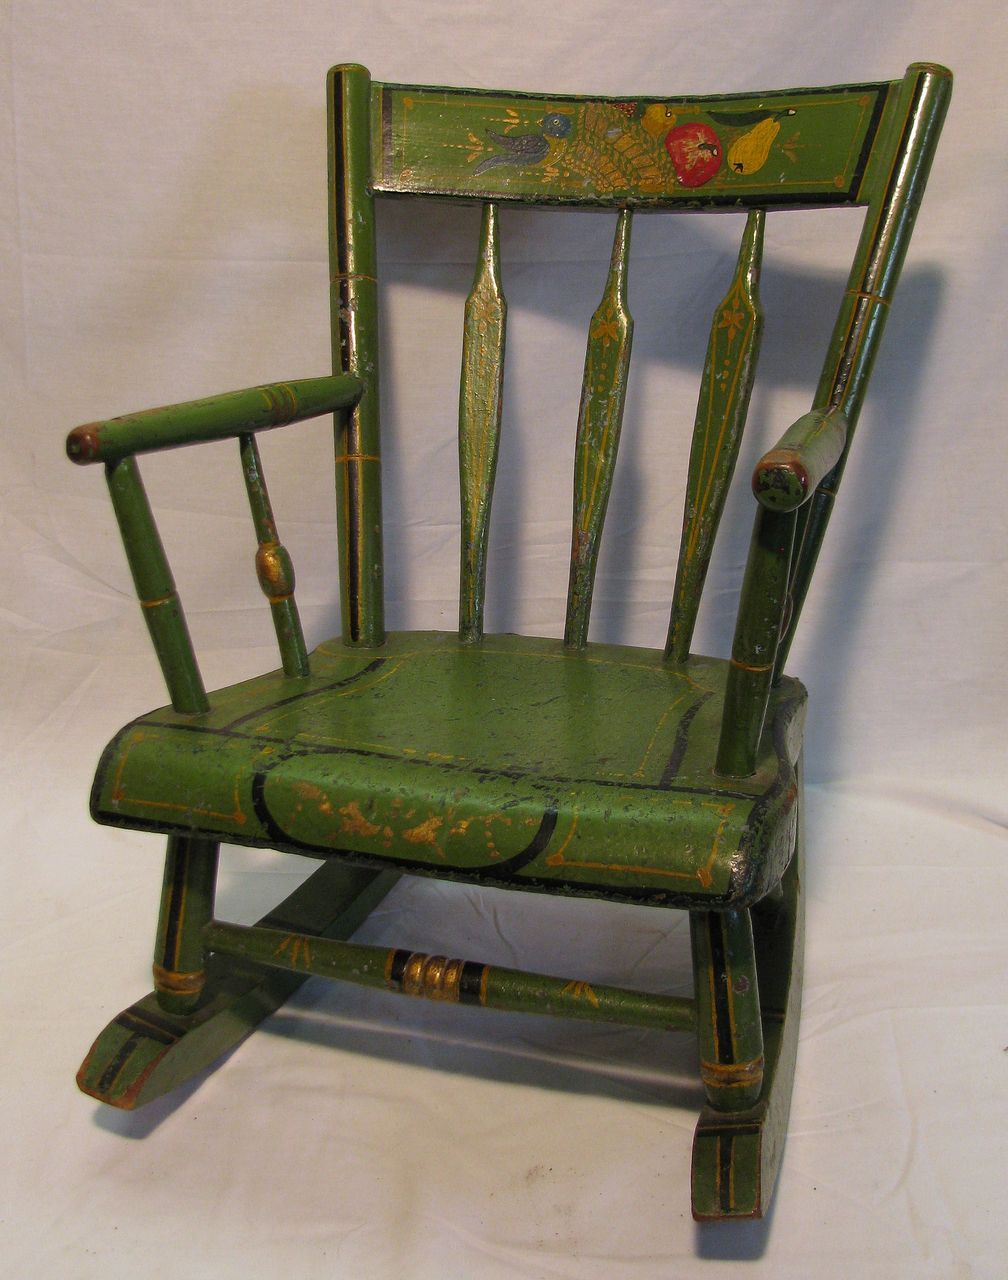 Antique Amish Green Folk Art Stenciled Child's Rocking Chair Antique Chairs,  Old Wooden Chairs, - Antique Amish Green Folk Art Stenciled Child's Rocking Chair